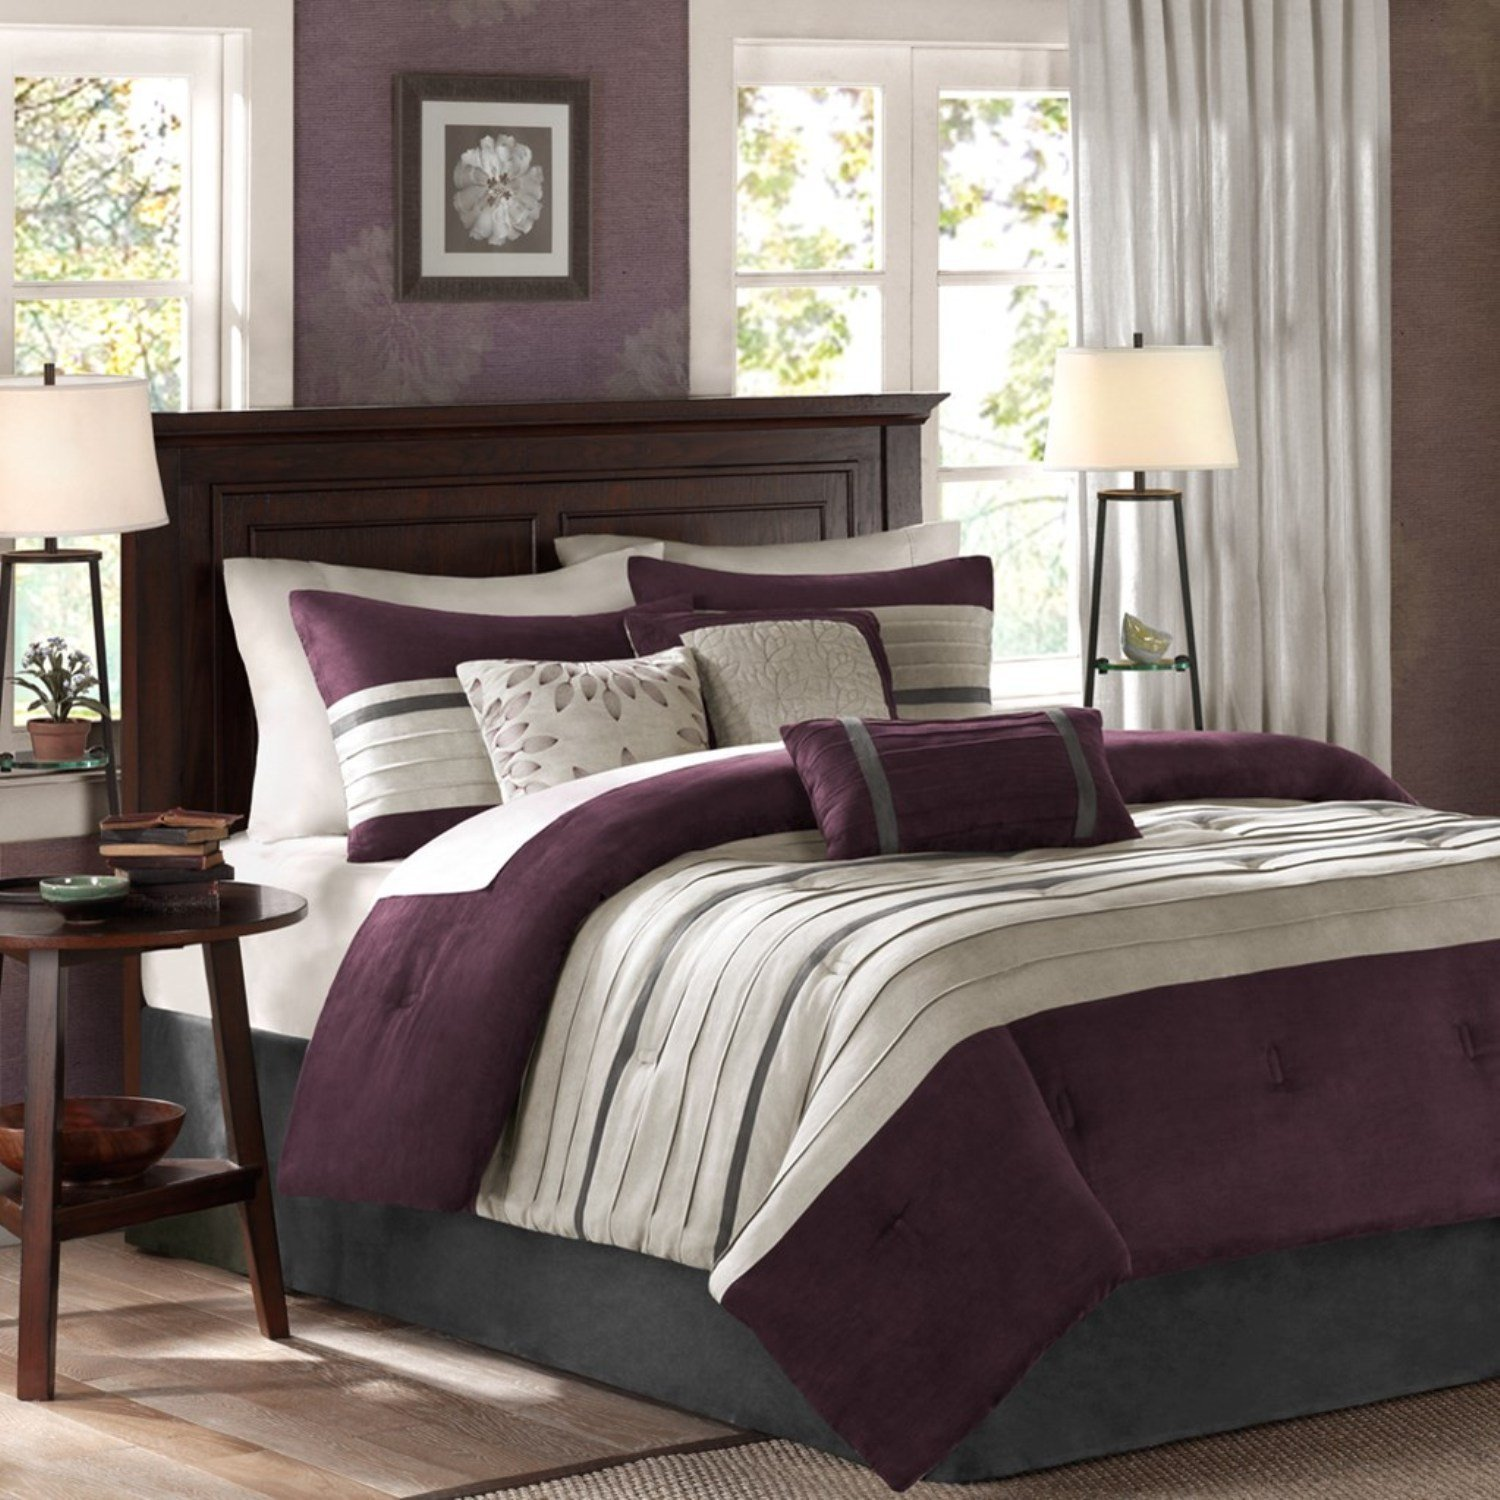 Bedding Decor: Grey And Purple Comforter & Bedding Sets